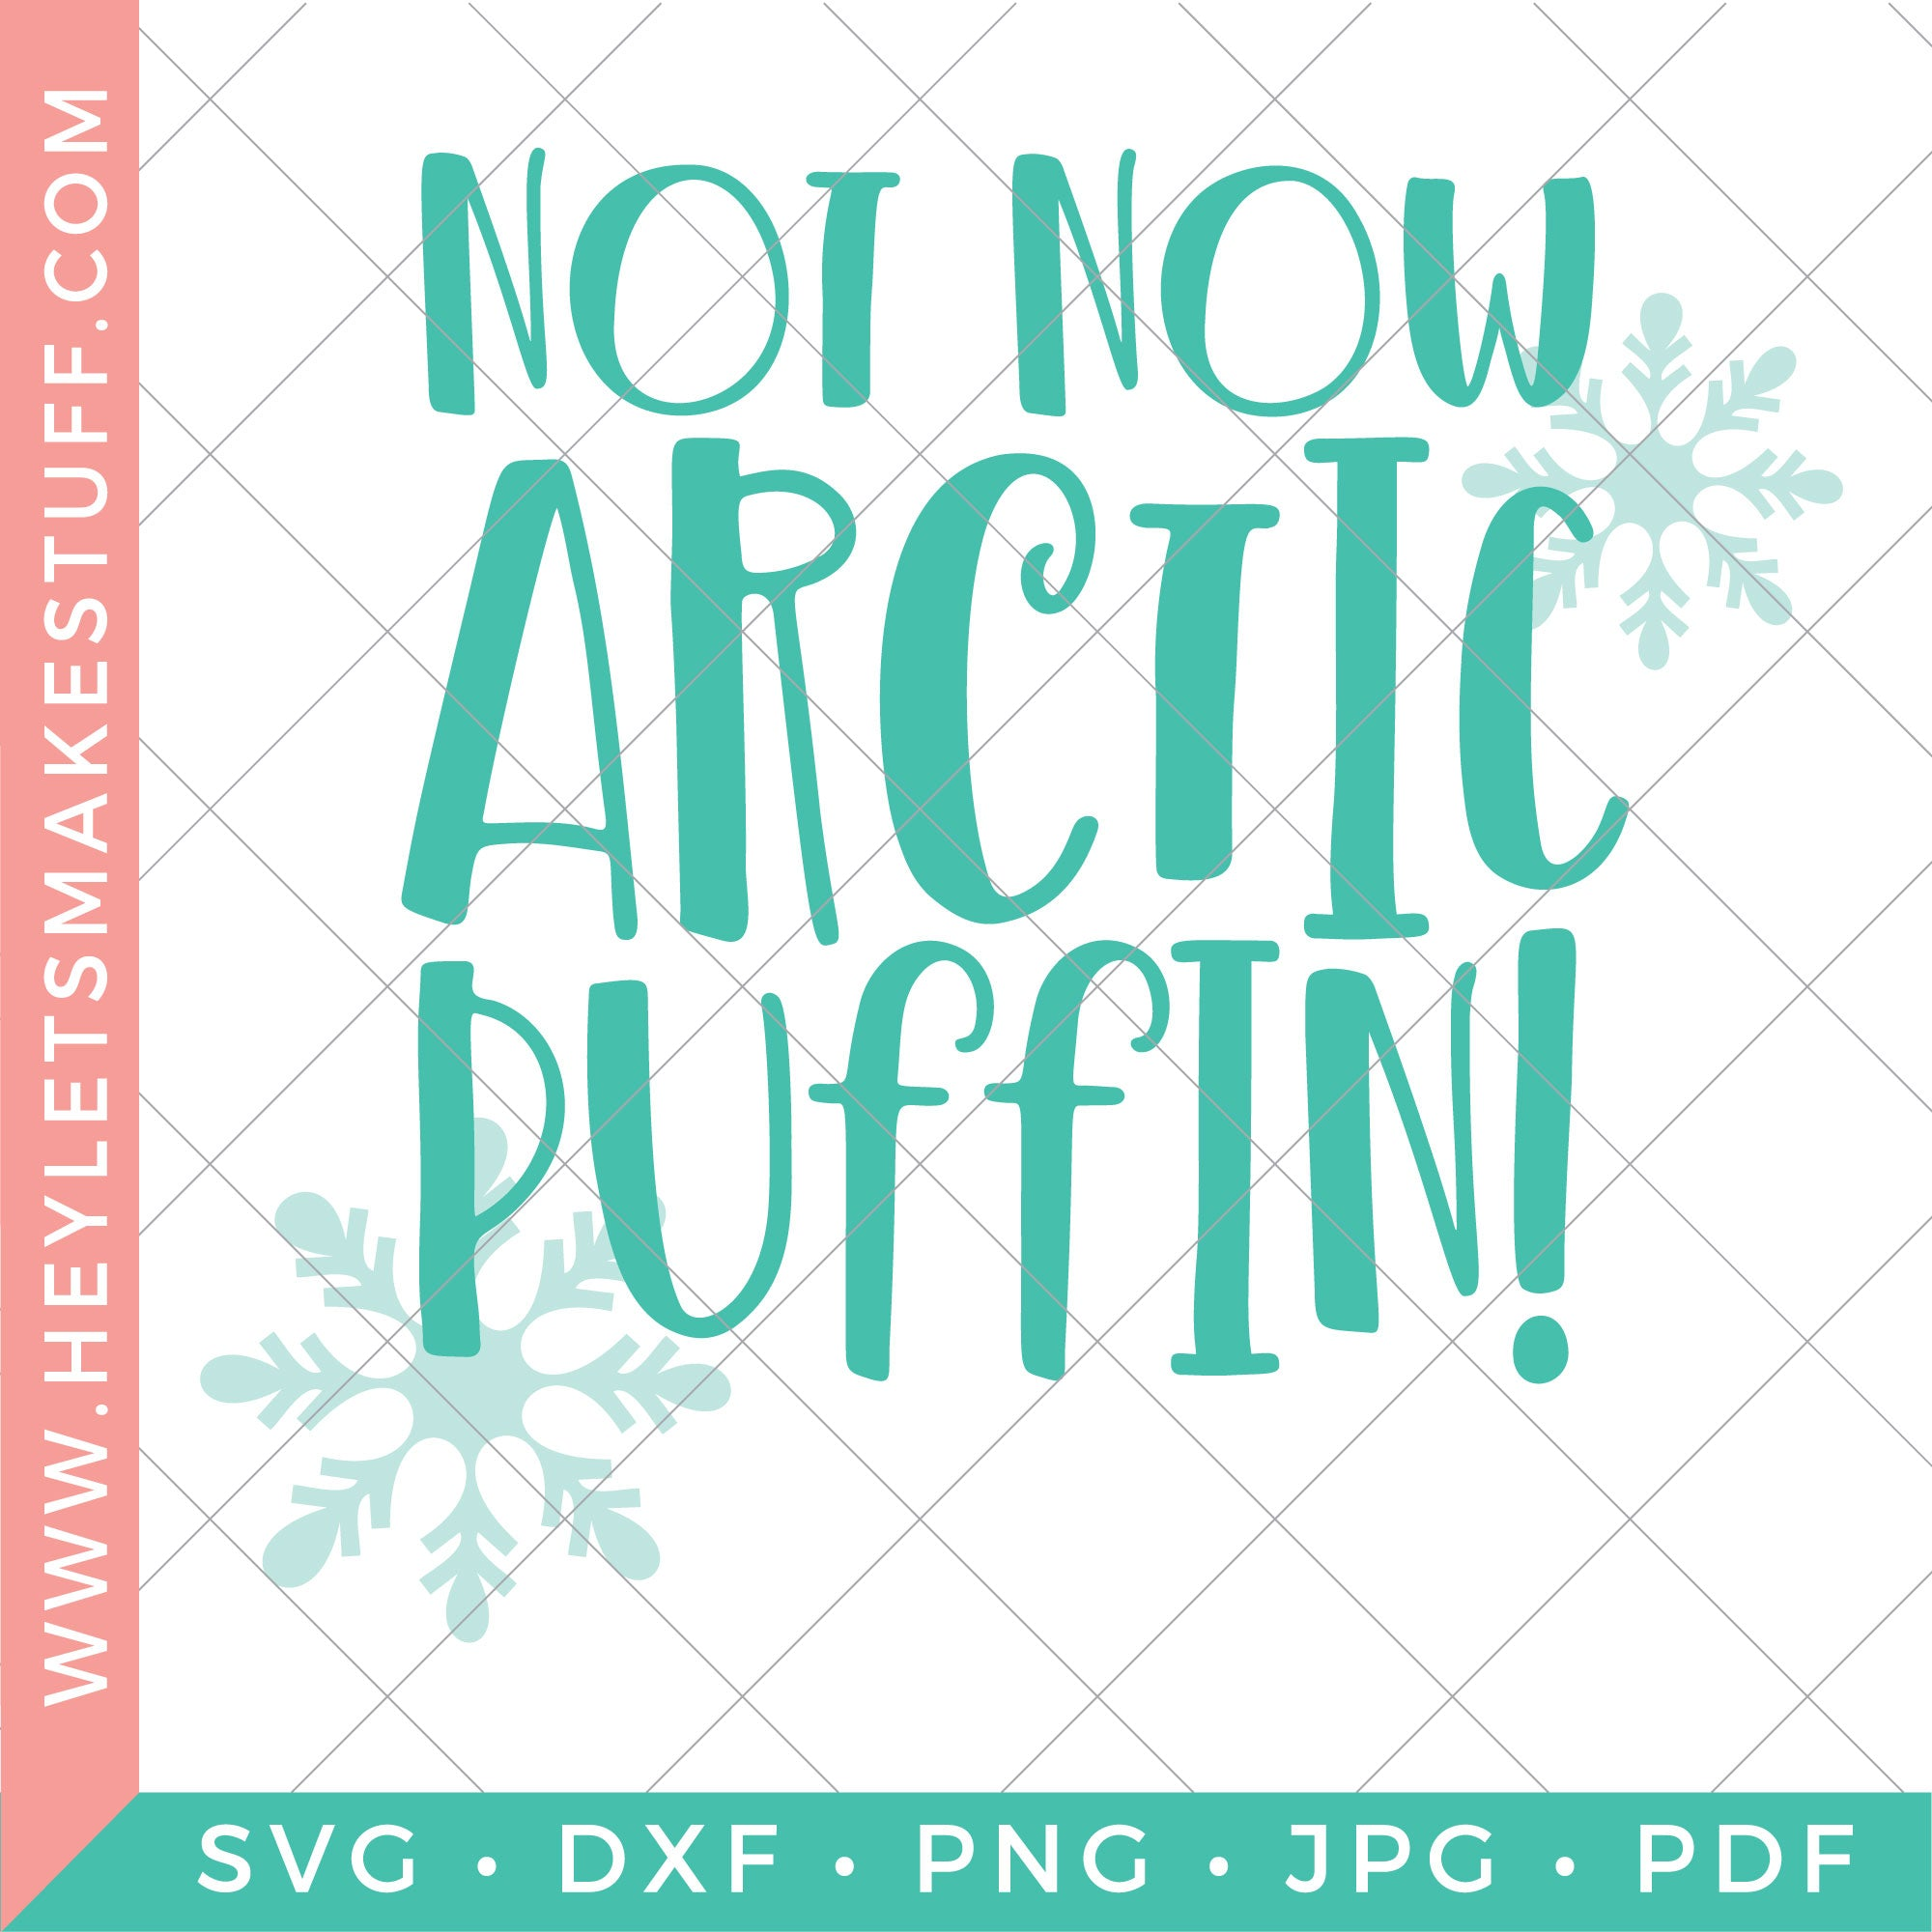 Not Now Arctic Puffin!